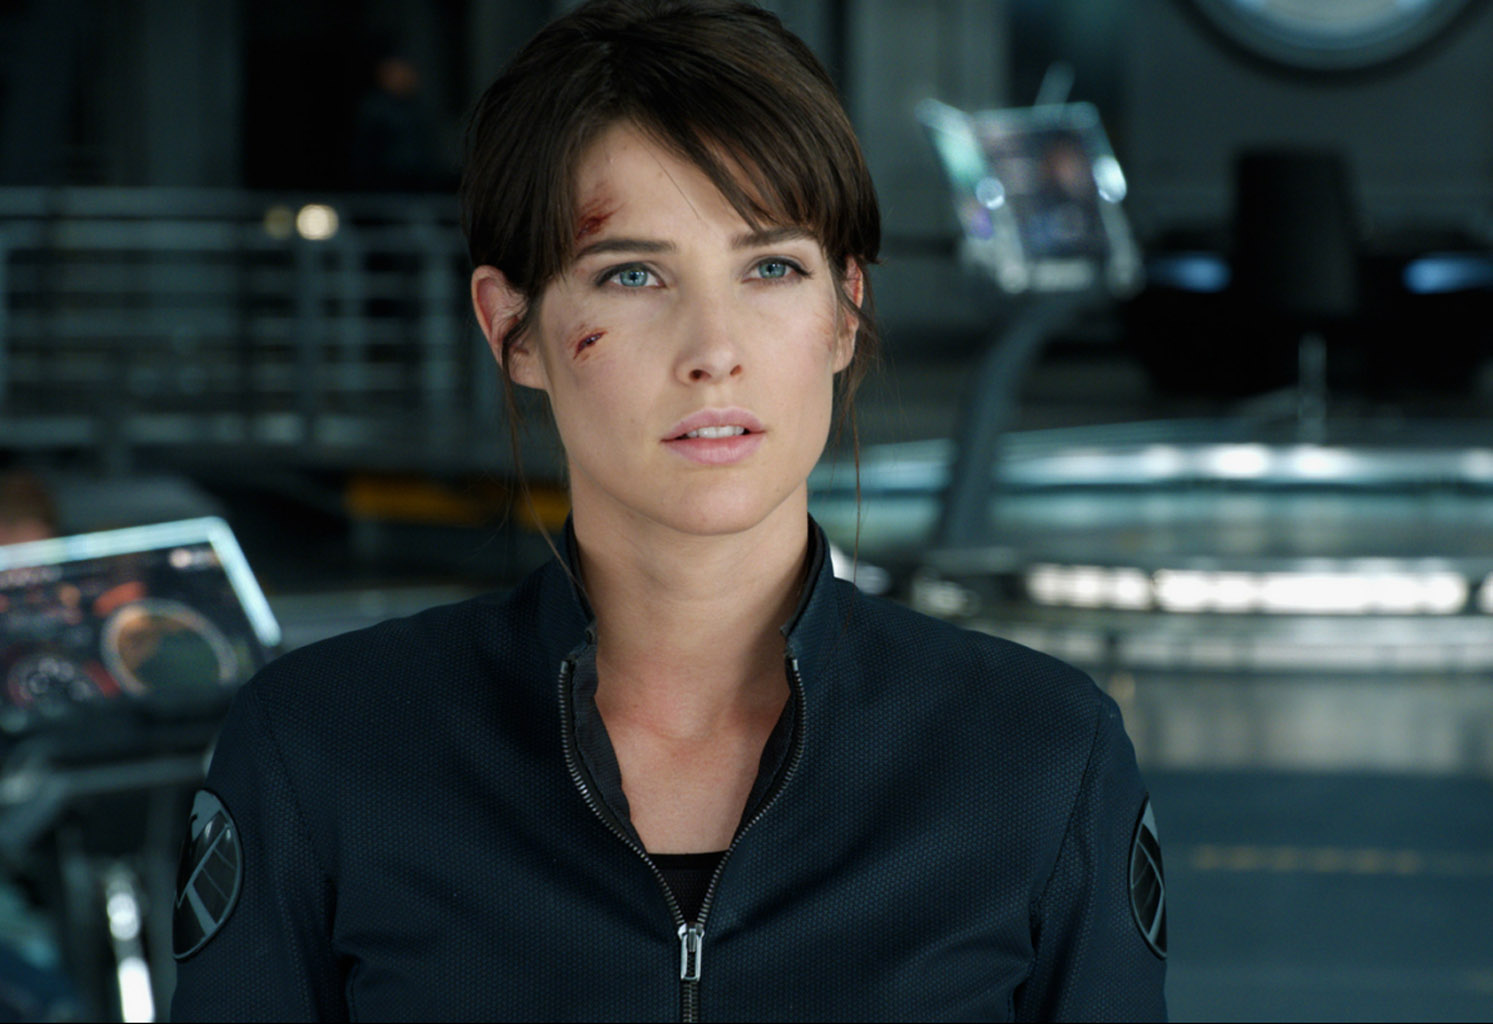 http://4.bp.blogspot.com/-2sWpl7Njoyk/T7MNn91PazI/AAAAAAAAEgA/pIqs1fbkJAI/s1600/Marvel-The-Avengers-Movie-2012-HD-Wallpaper-Maria-Hill-Shield-Agent-11.jpg